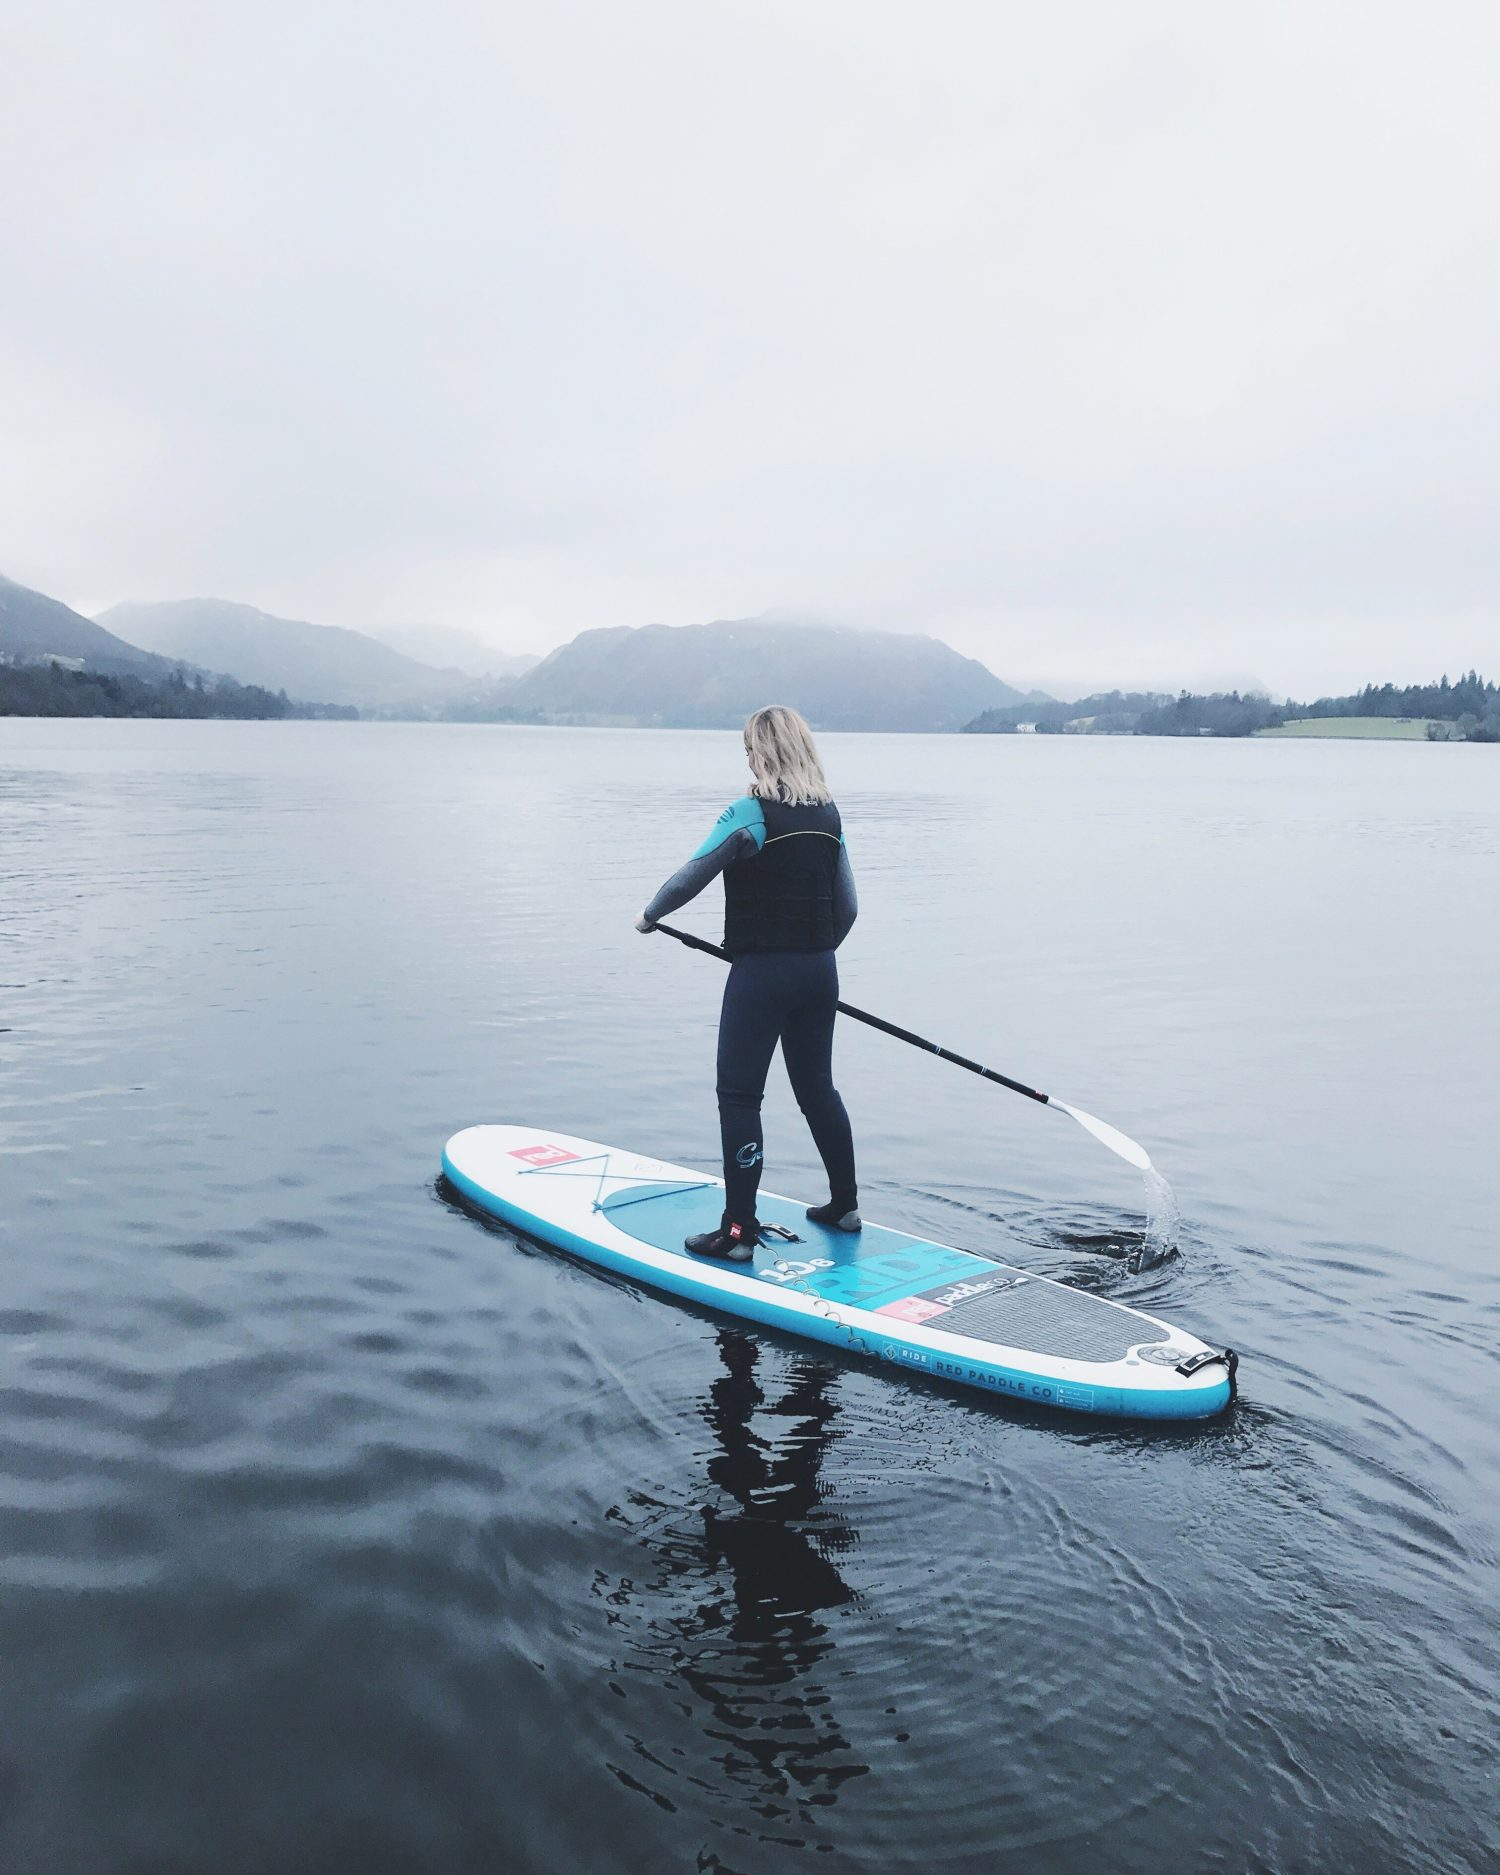 Emma on a stand up paddle board on a vast lake with mountains shrouded in cloud